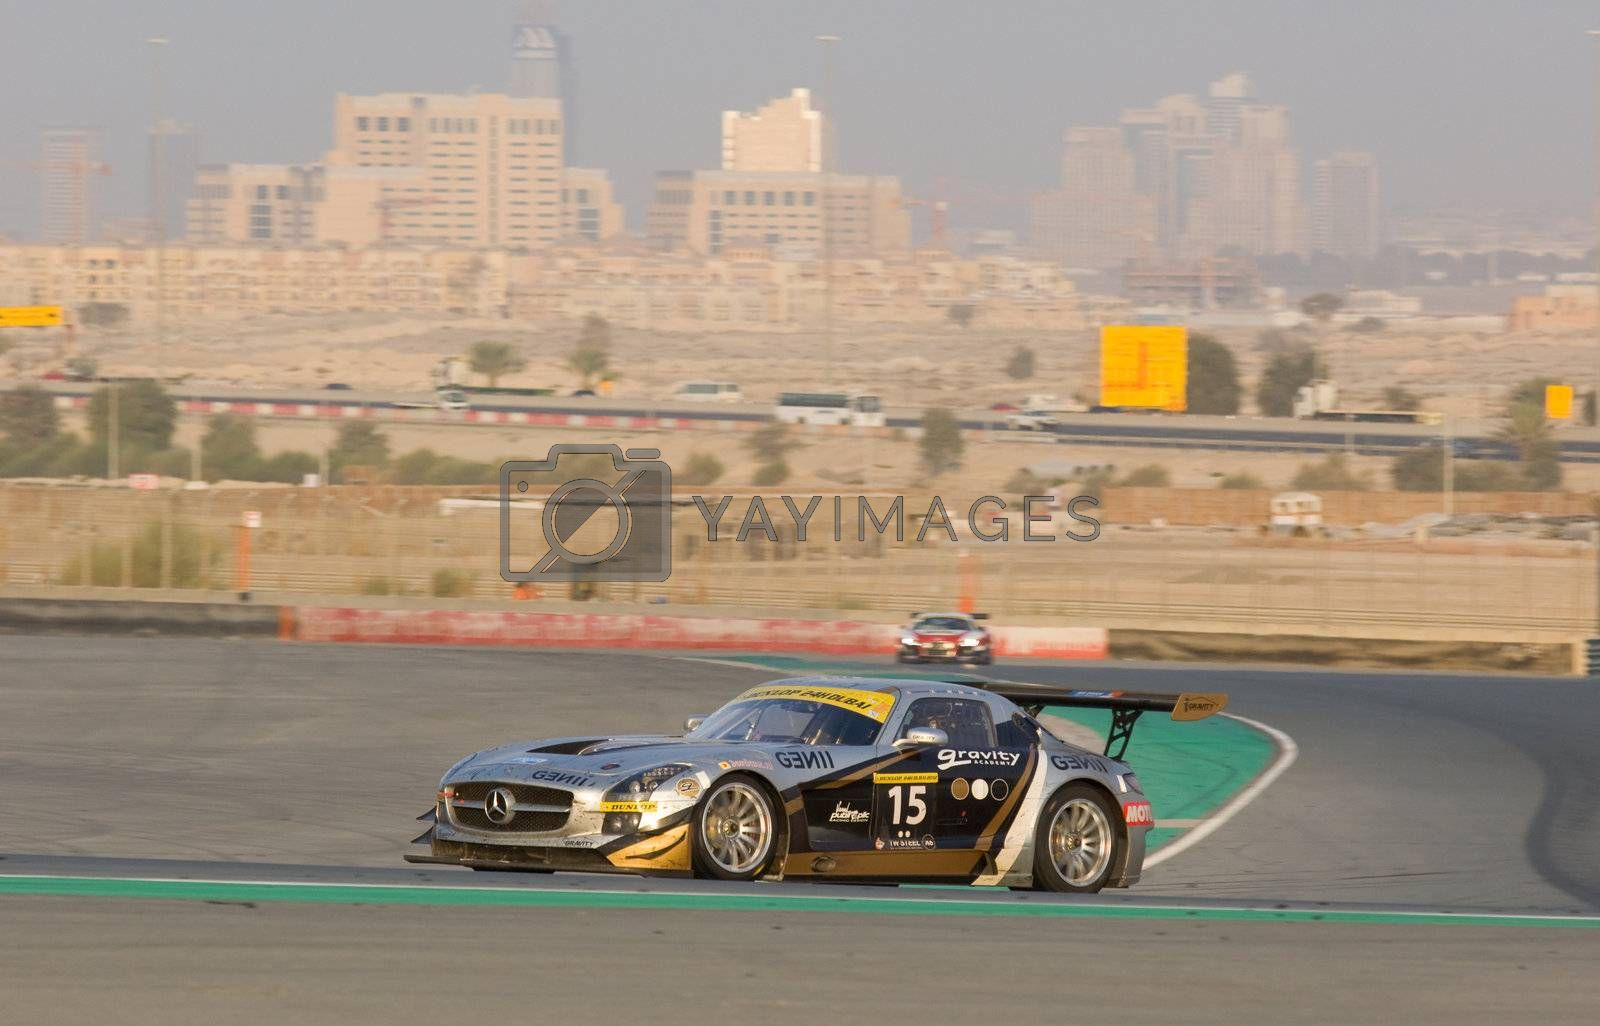 DUBAI - JANUARY 14: Car 15, a Mercedes SLS AMG GT3 with Dubai City in the background, during the 2012 Dunlop 24 Hour Race at Dubai Autodrome on January 14, 2012.